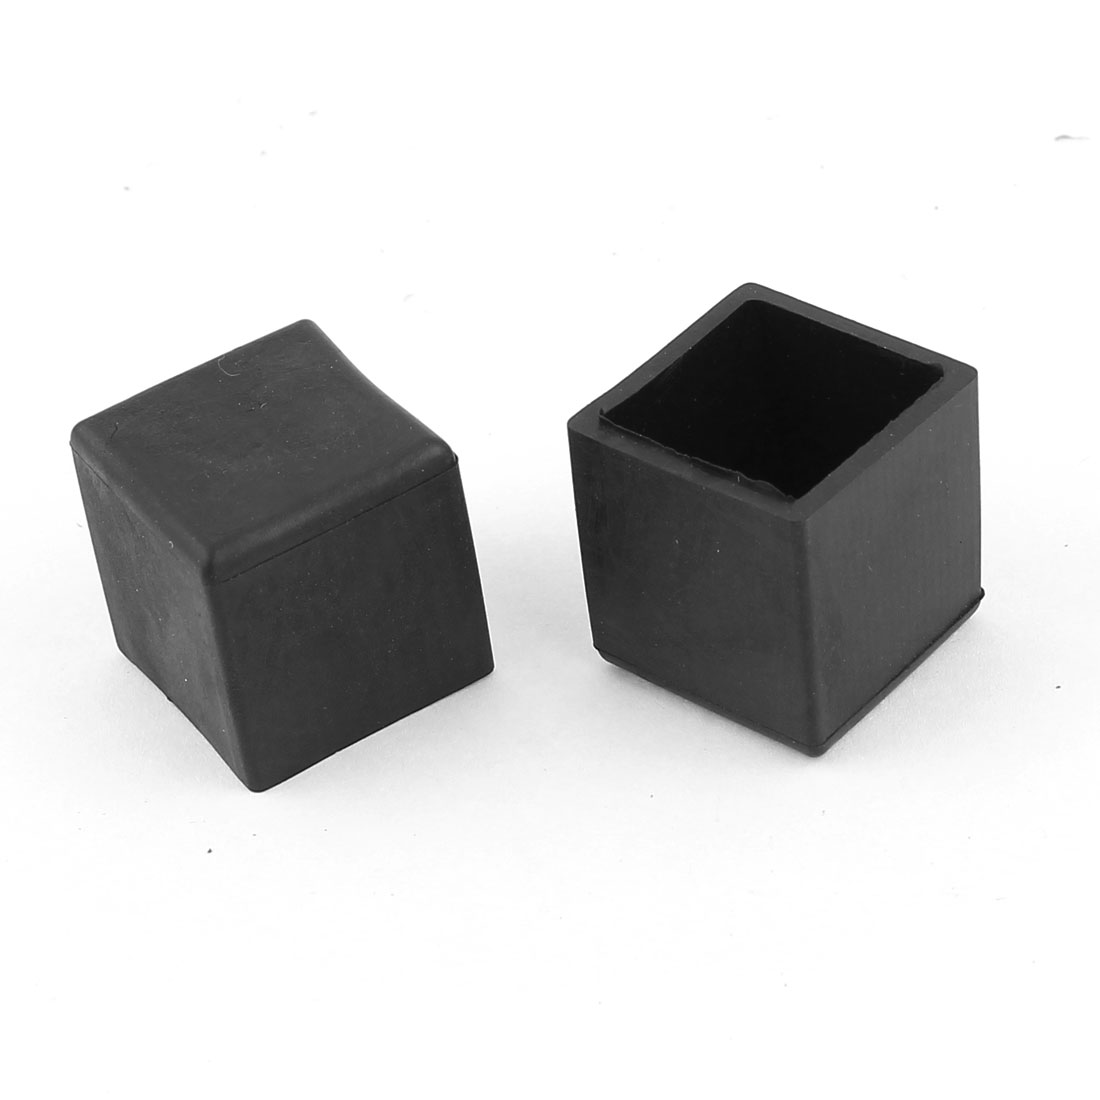 folding chair rubber feet swing shops near me home furniture foot square cover holder protector 20mm x